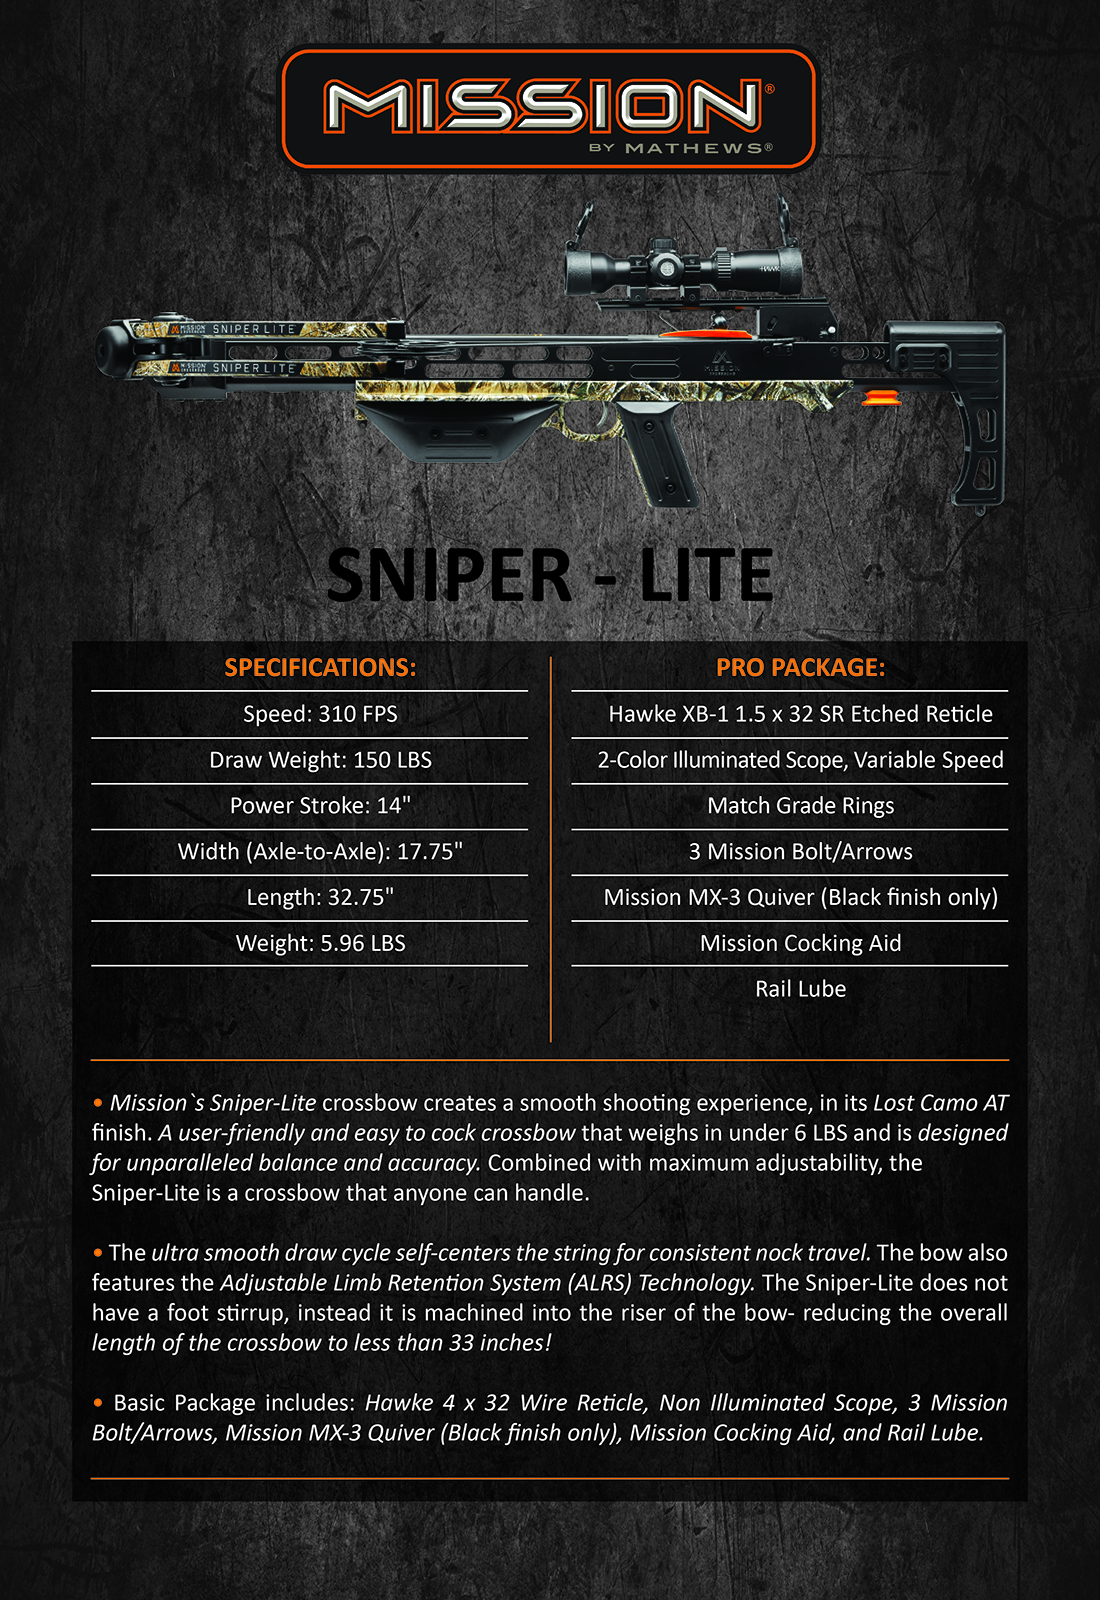 Mission Sniper Lite Product Description